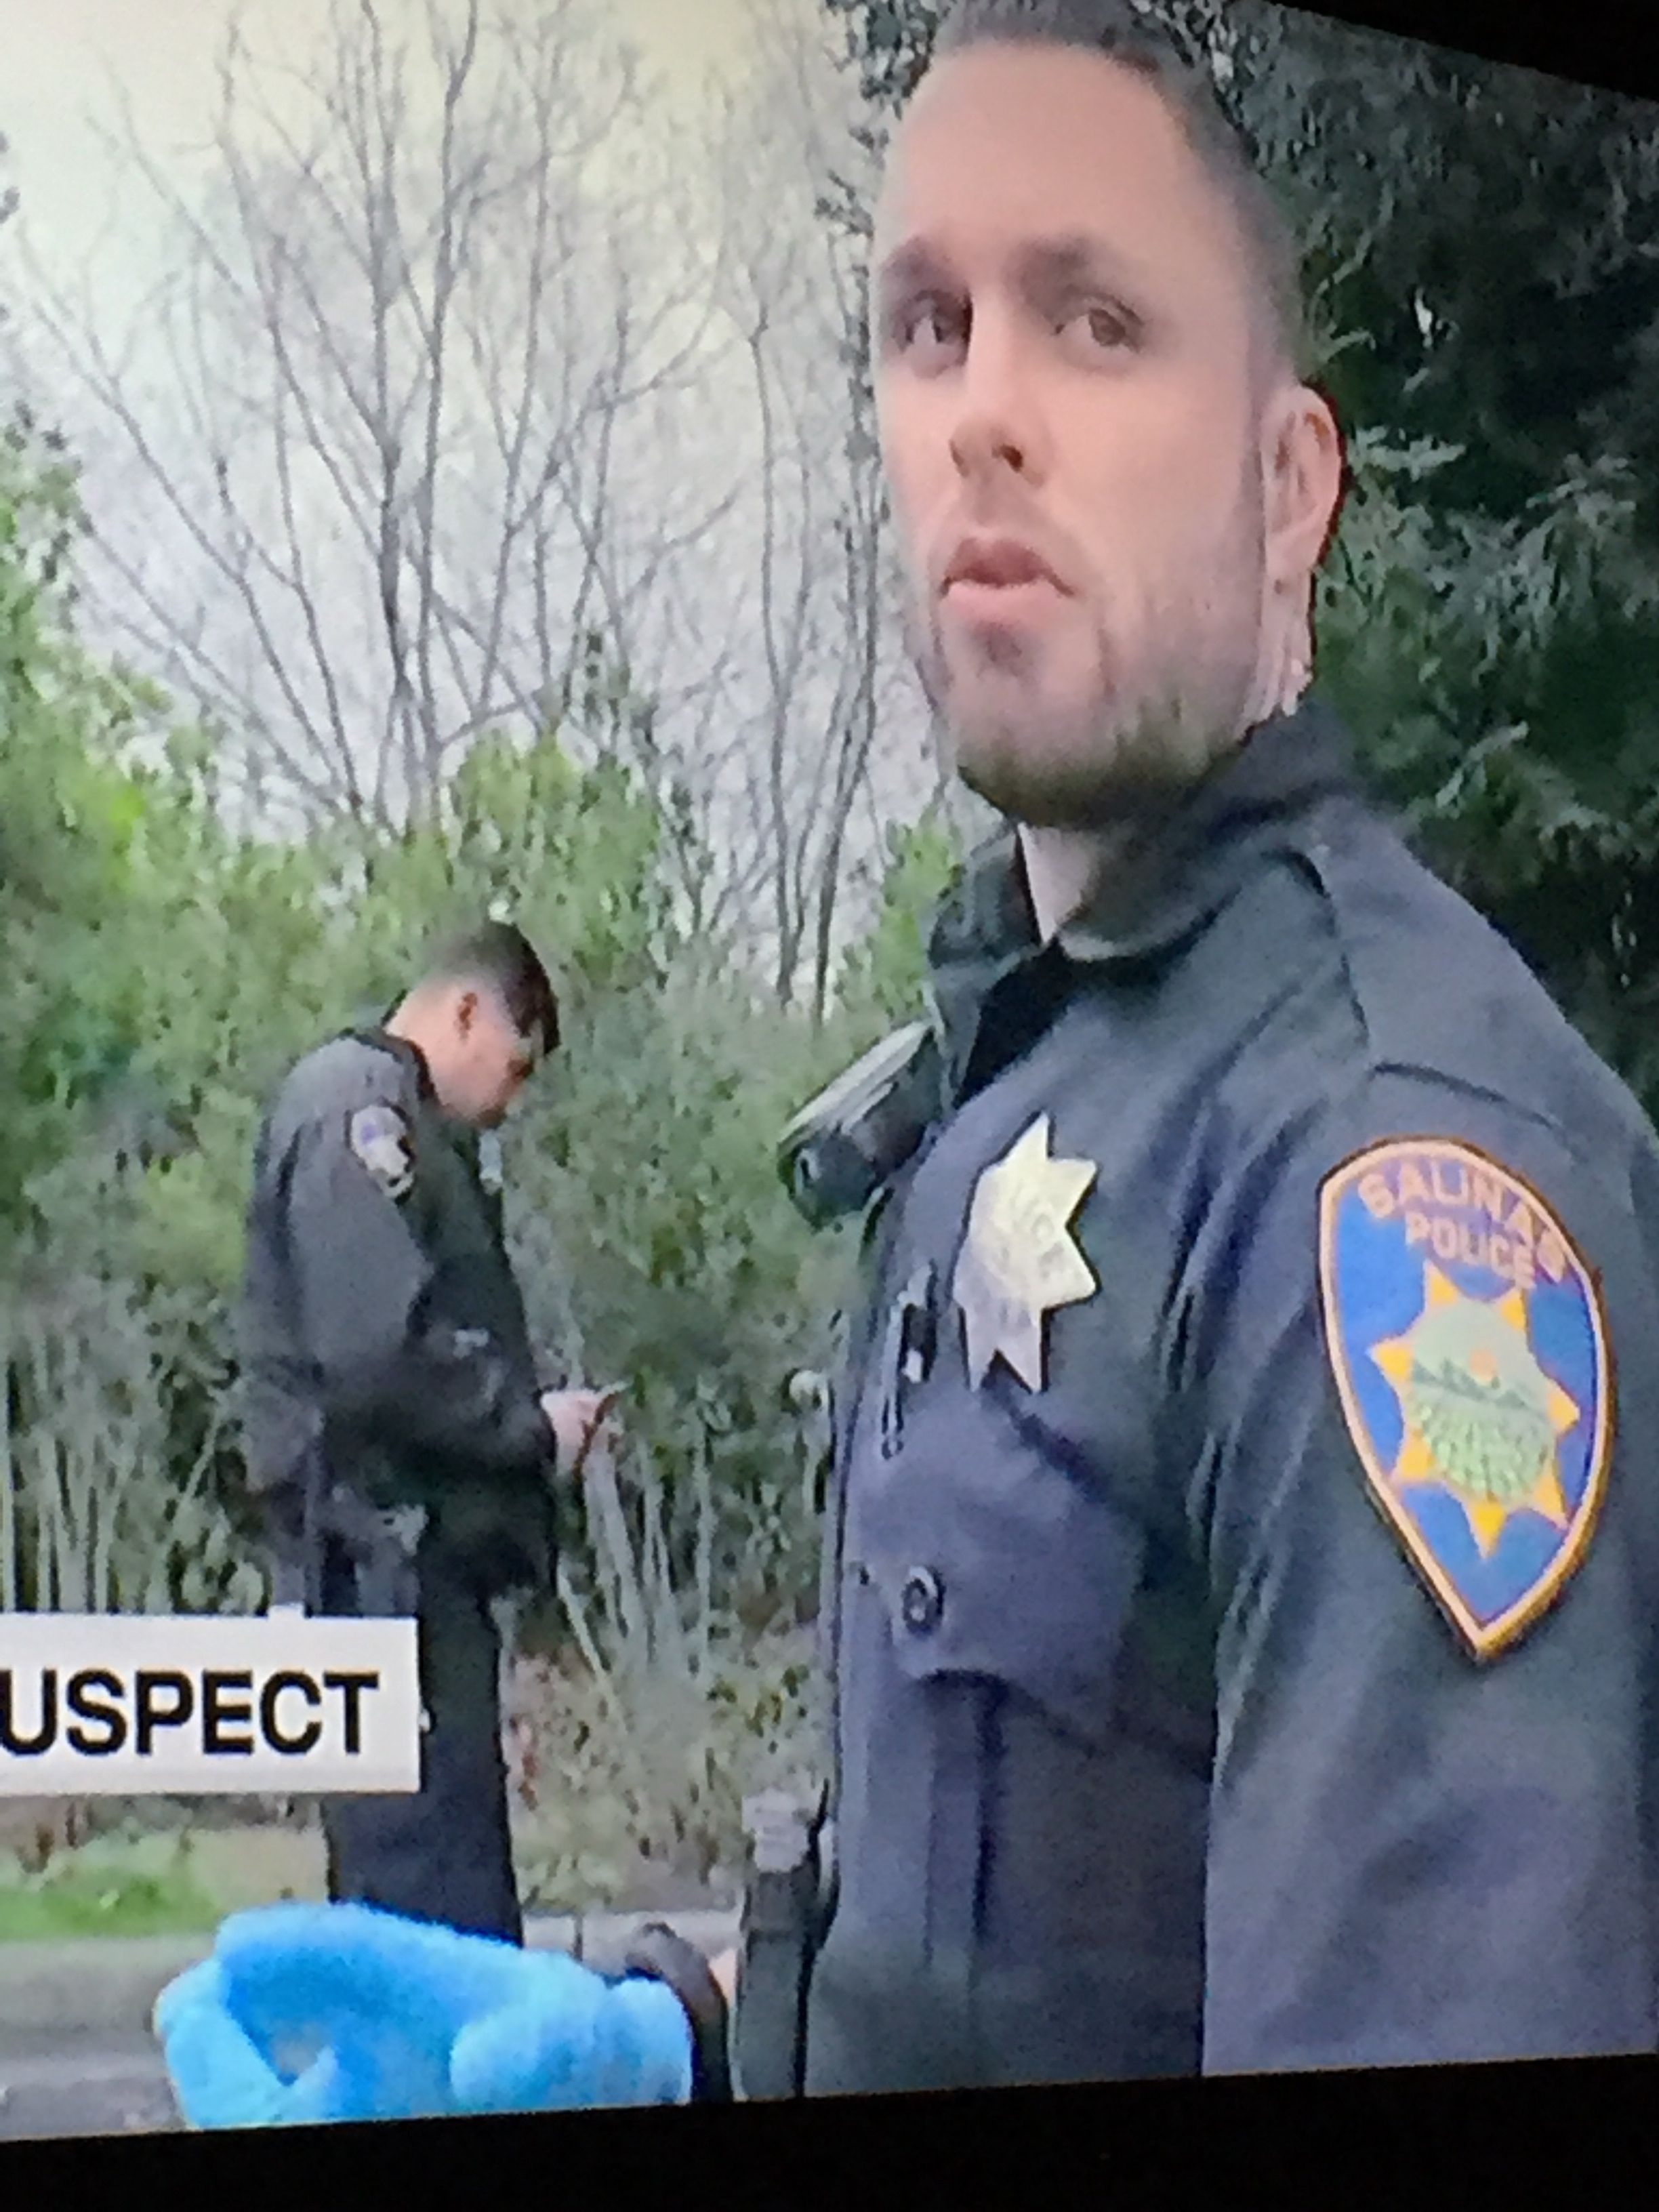 Pin by Lindsay Hotaling on Live pd